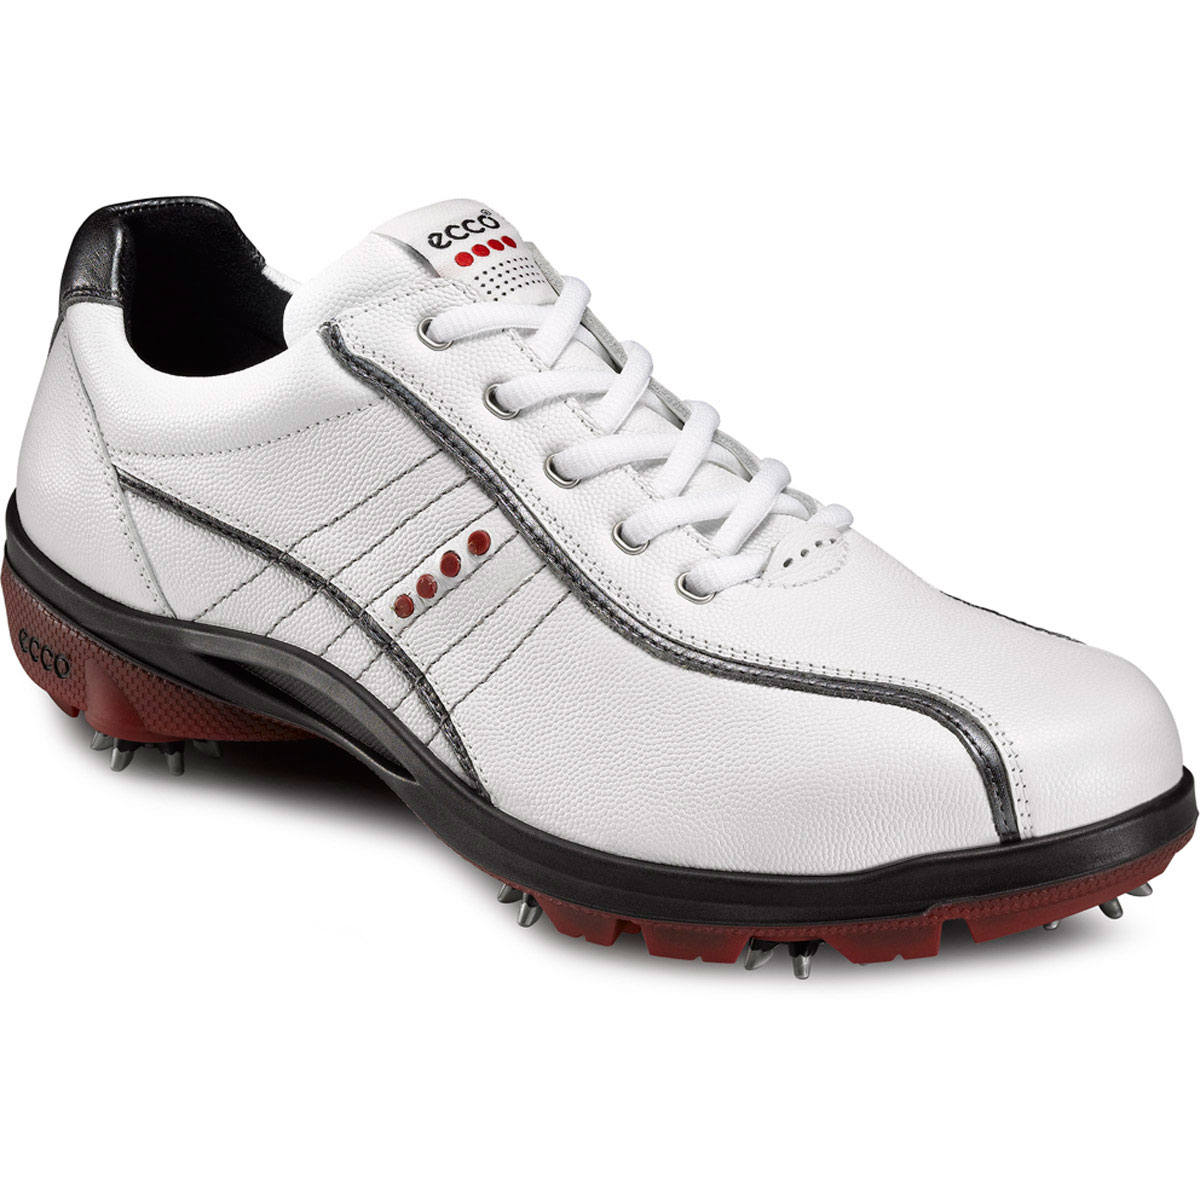 Ecco-2012-Mens-Cool-III-Gore-Tex-Golf-Shoes-White